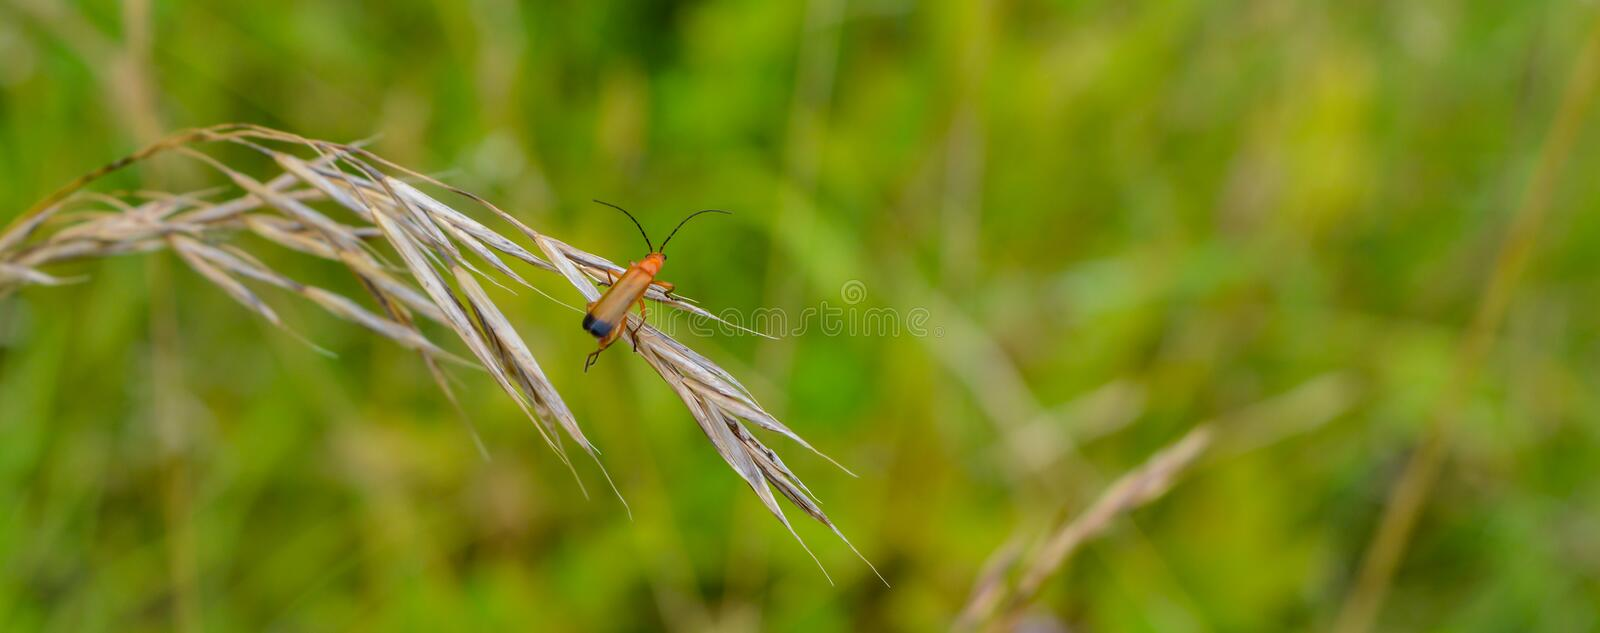 Red soldier beetle. A red soldier beetle dangling on a long grass in the meadows stock photo